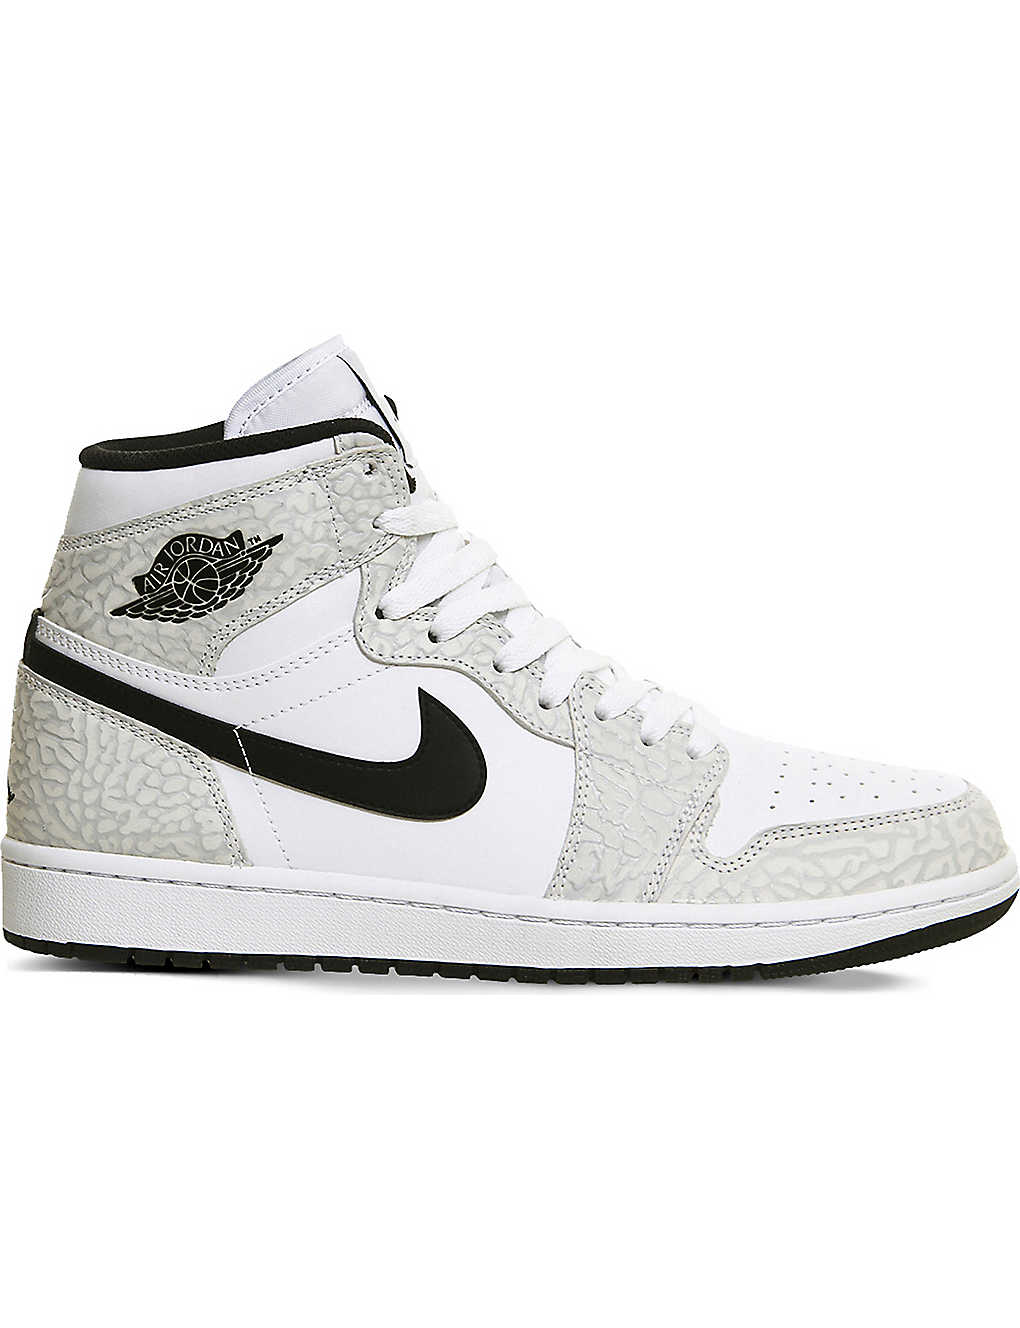 separation shoes 50902 f4444 NIKE Air Jordan 1 OG canvas high-top trainers